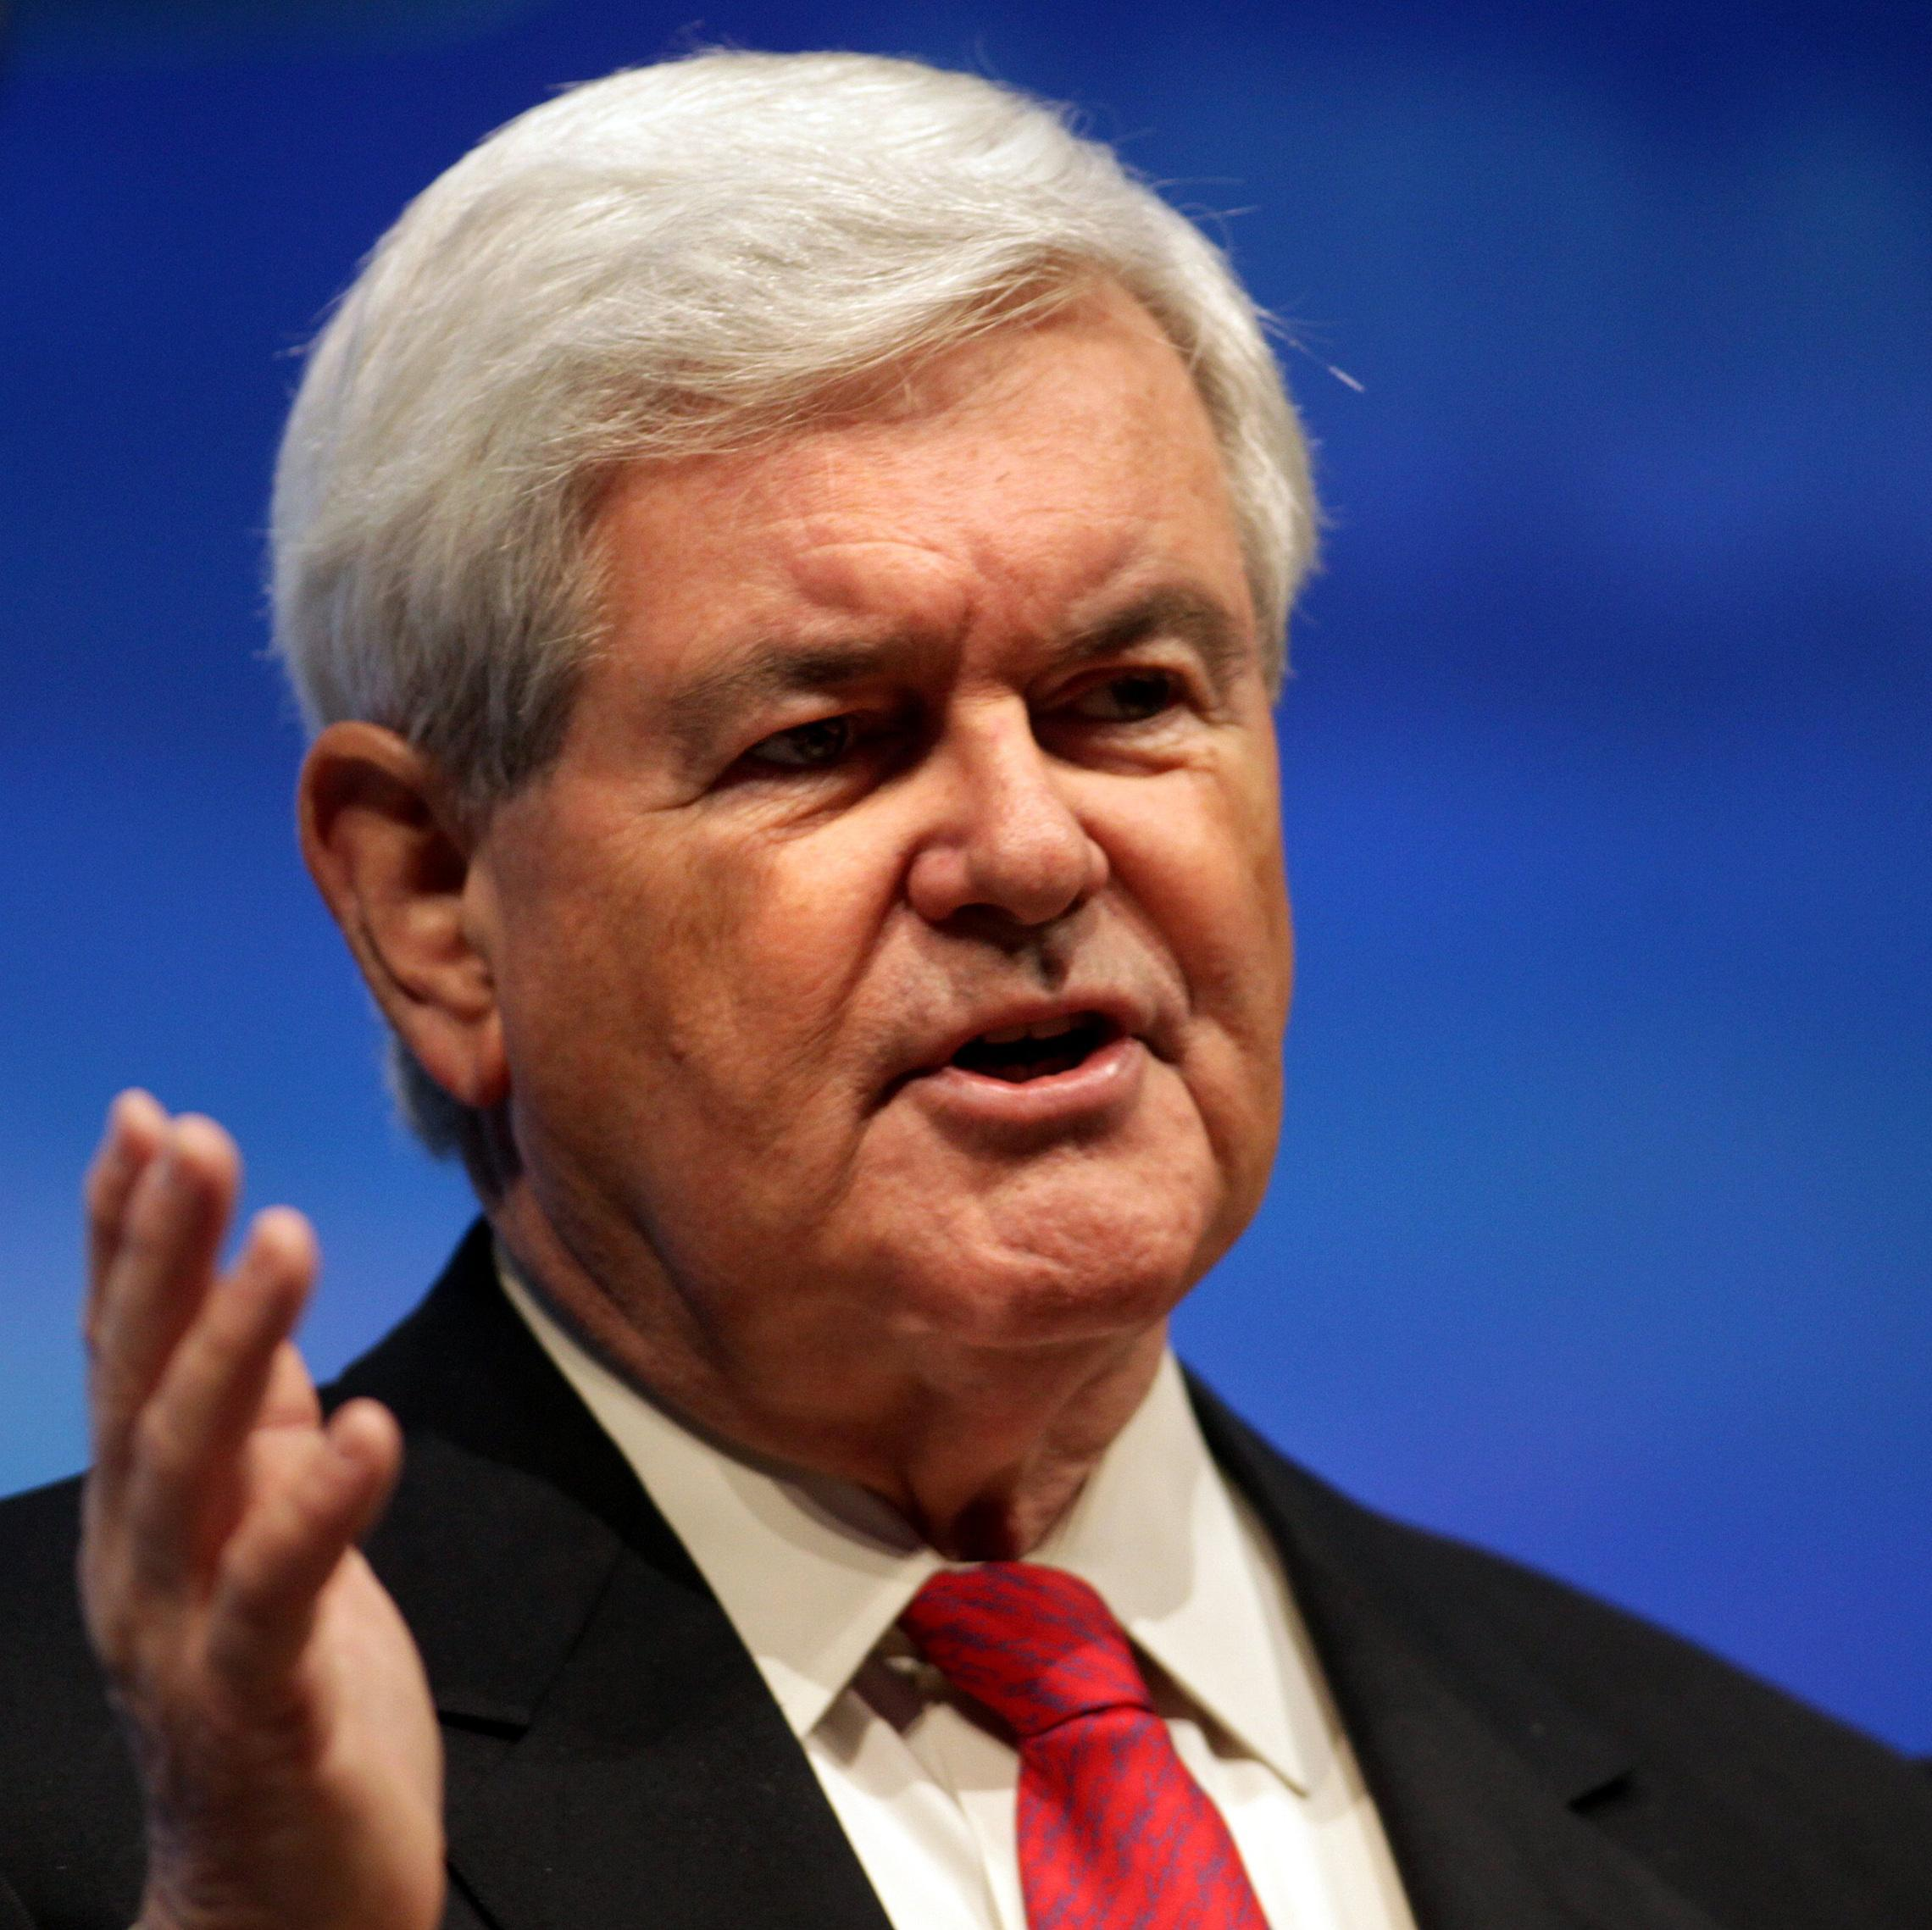 Gingrich Cautions GOP About 'Overreach' On Scandals